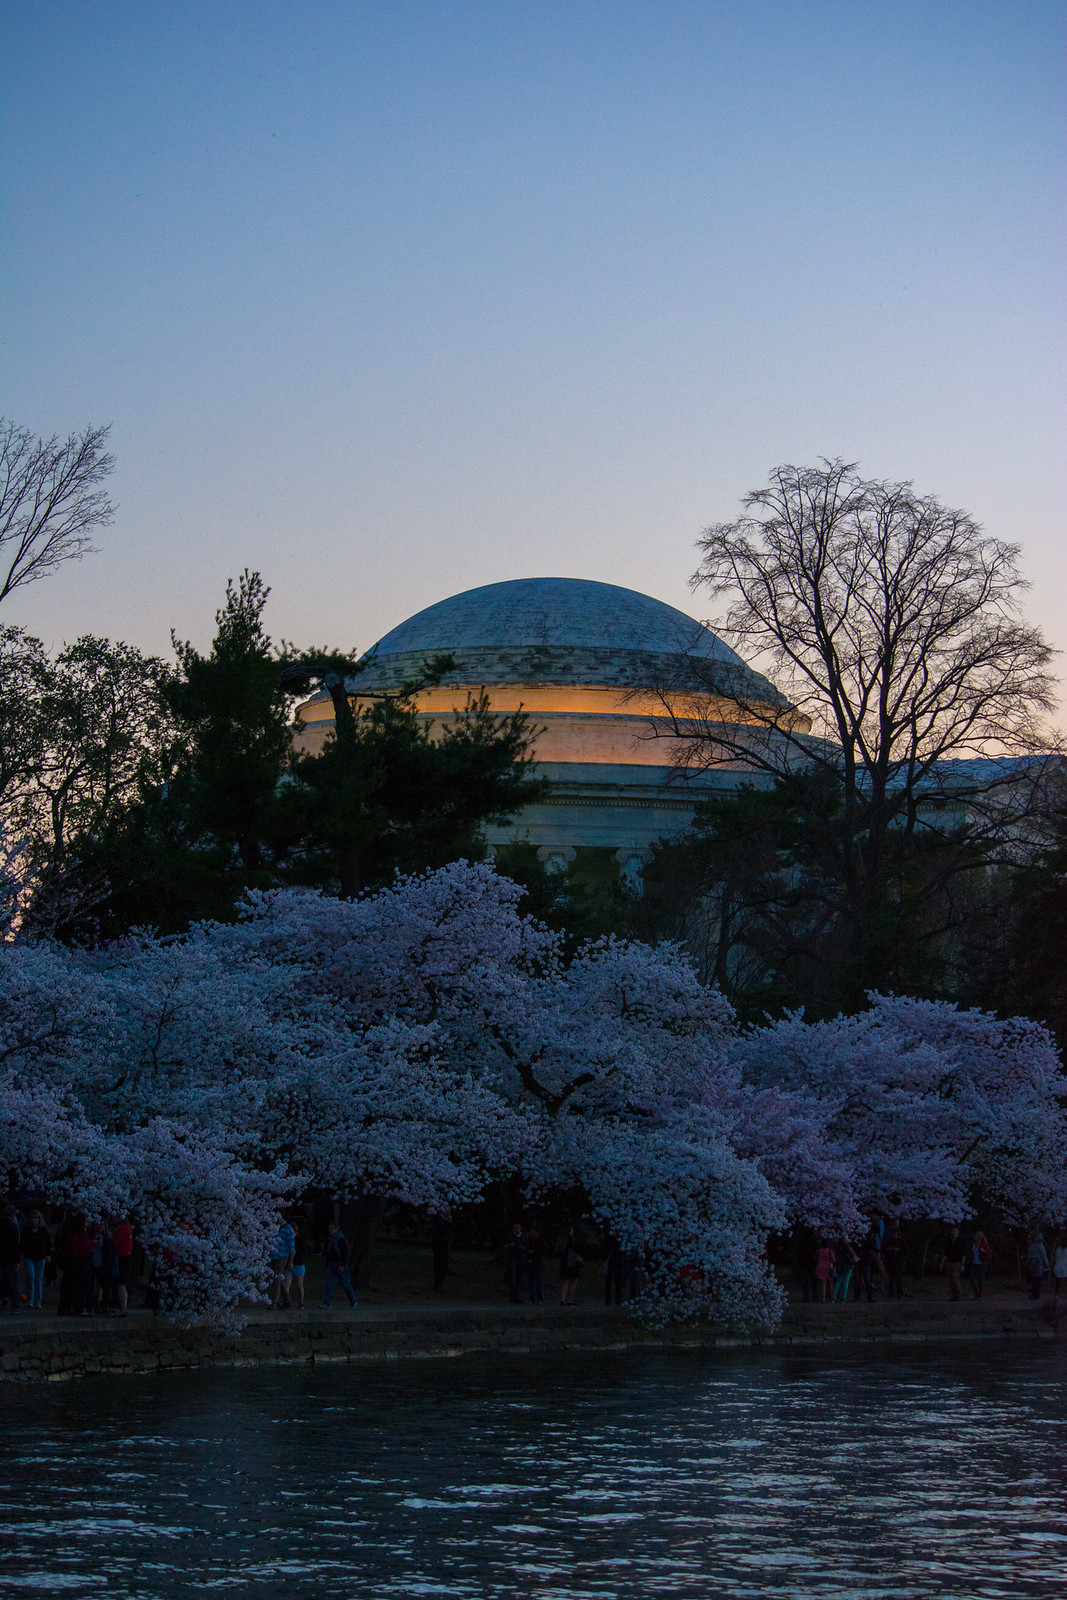 Jefferson Memorial sunset 005 - Washington DC - 2014-04-10